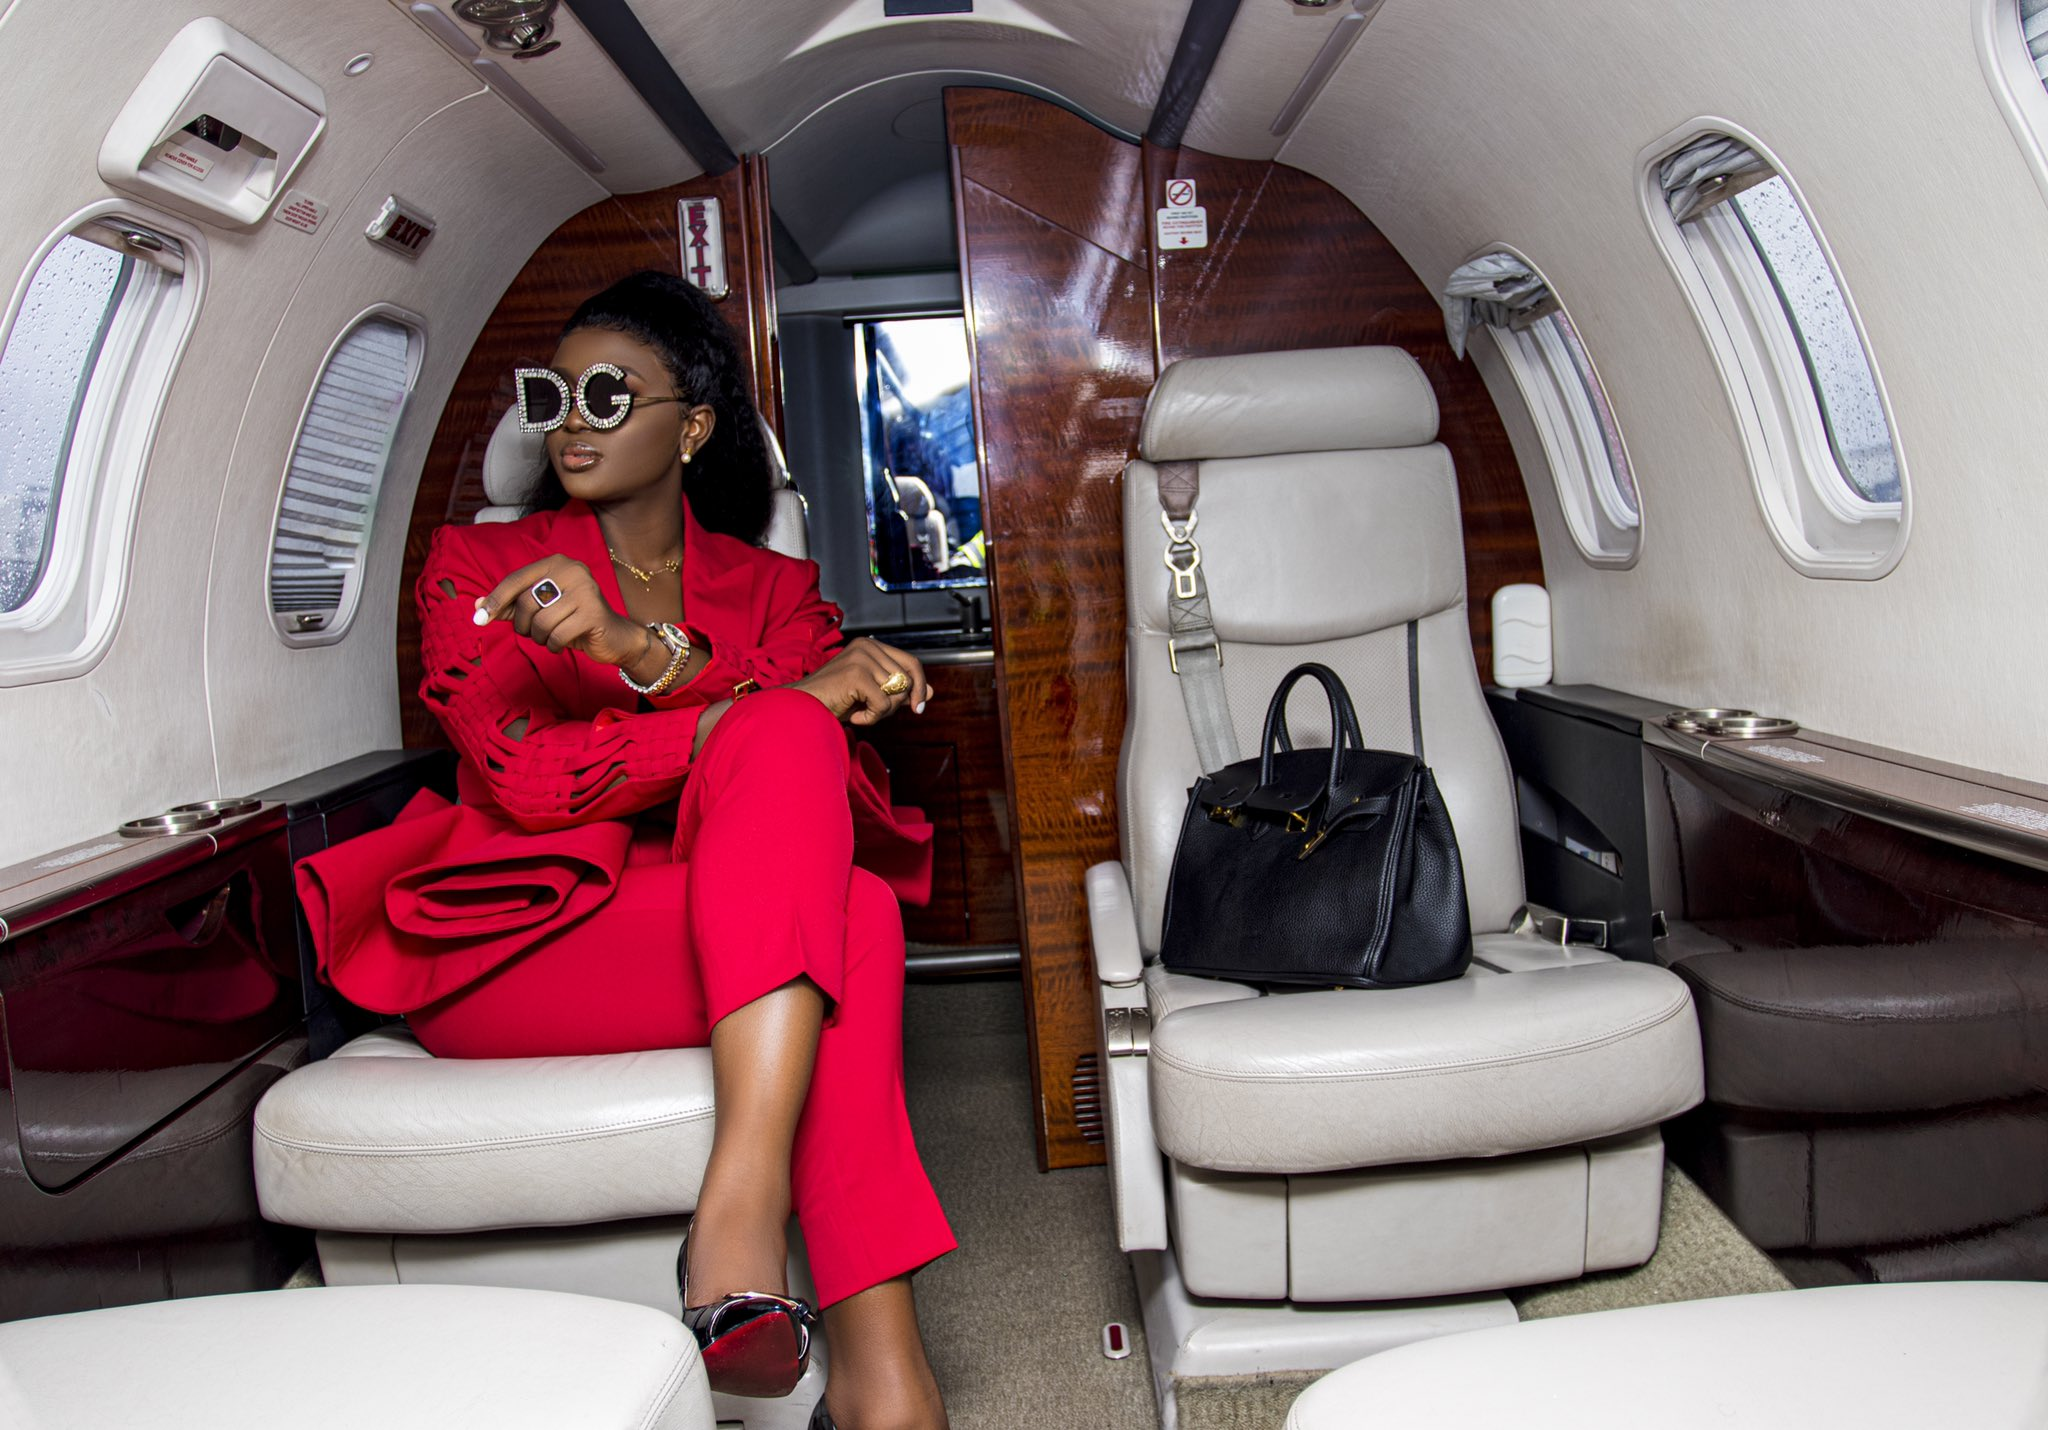 BBNaija 2020 Star Ka3na breaks the internet with red outfit on board a private jet